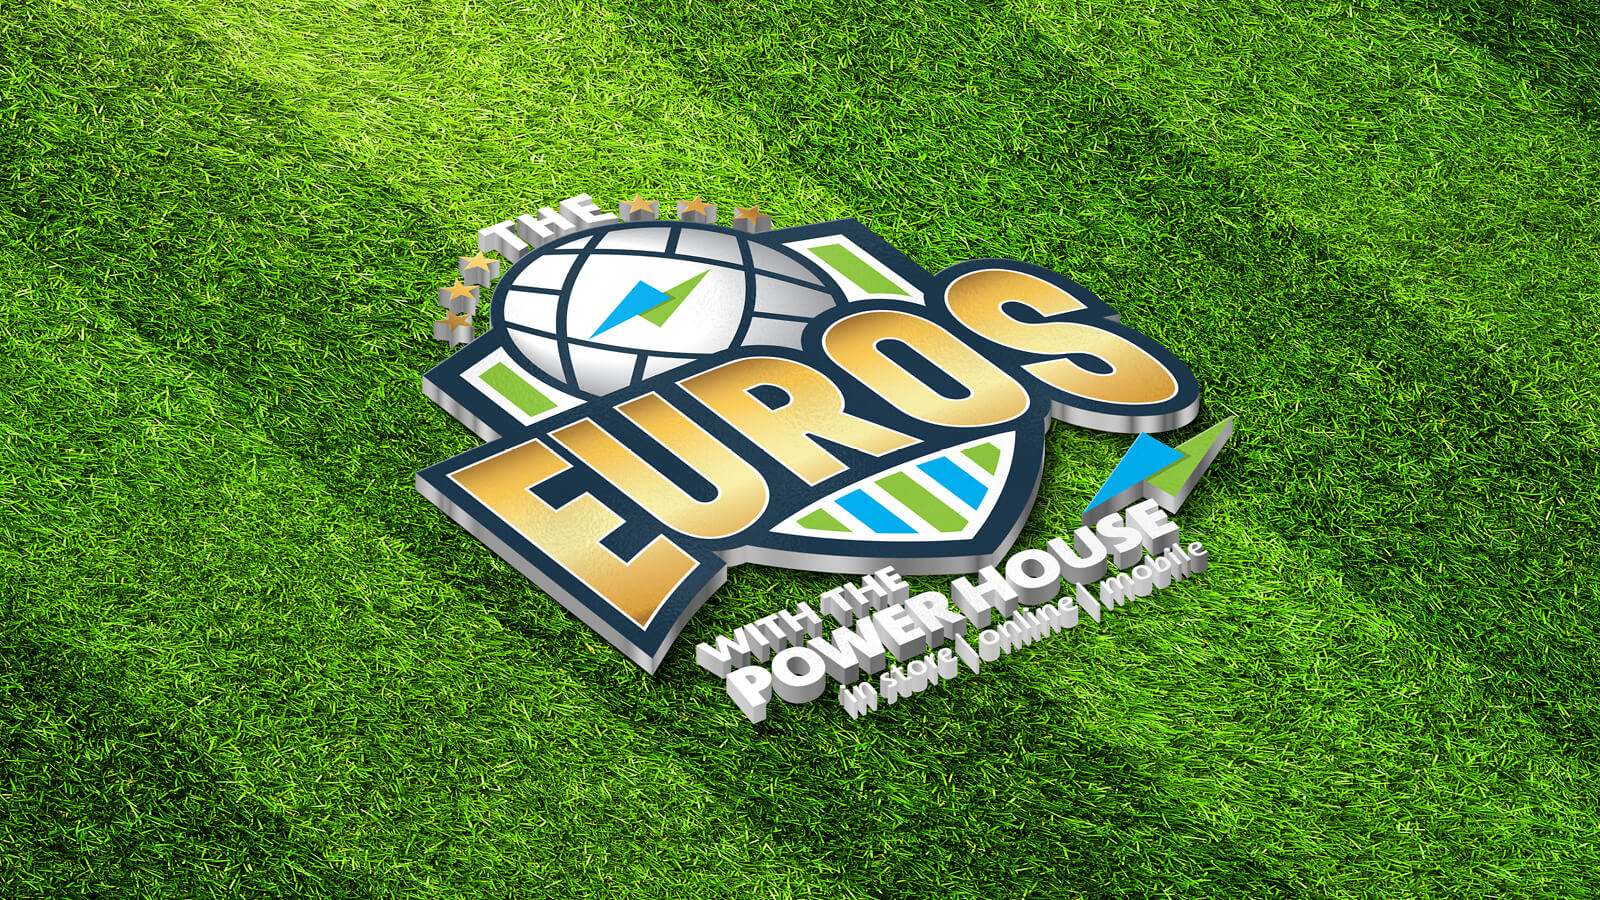 Euro 2020 TV & social campaign for Powerhouse, Jersey